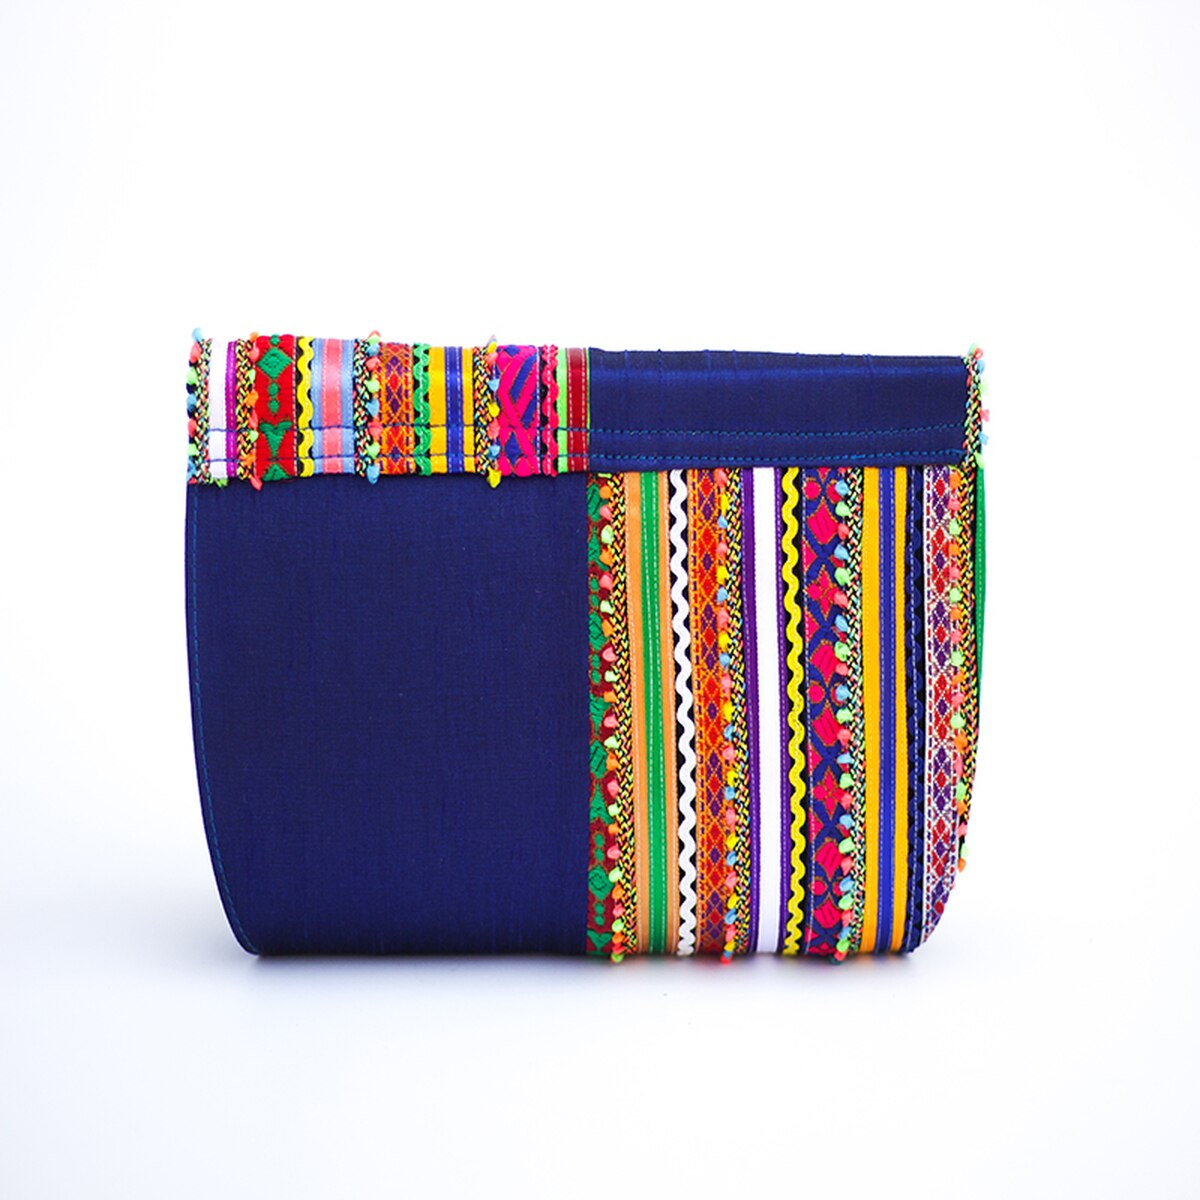 Blue Vibrant Clutch from Siyana London